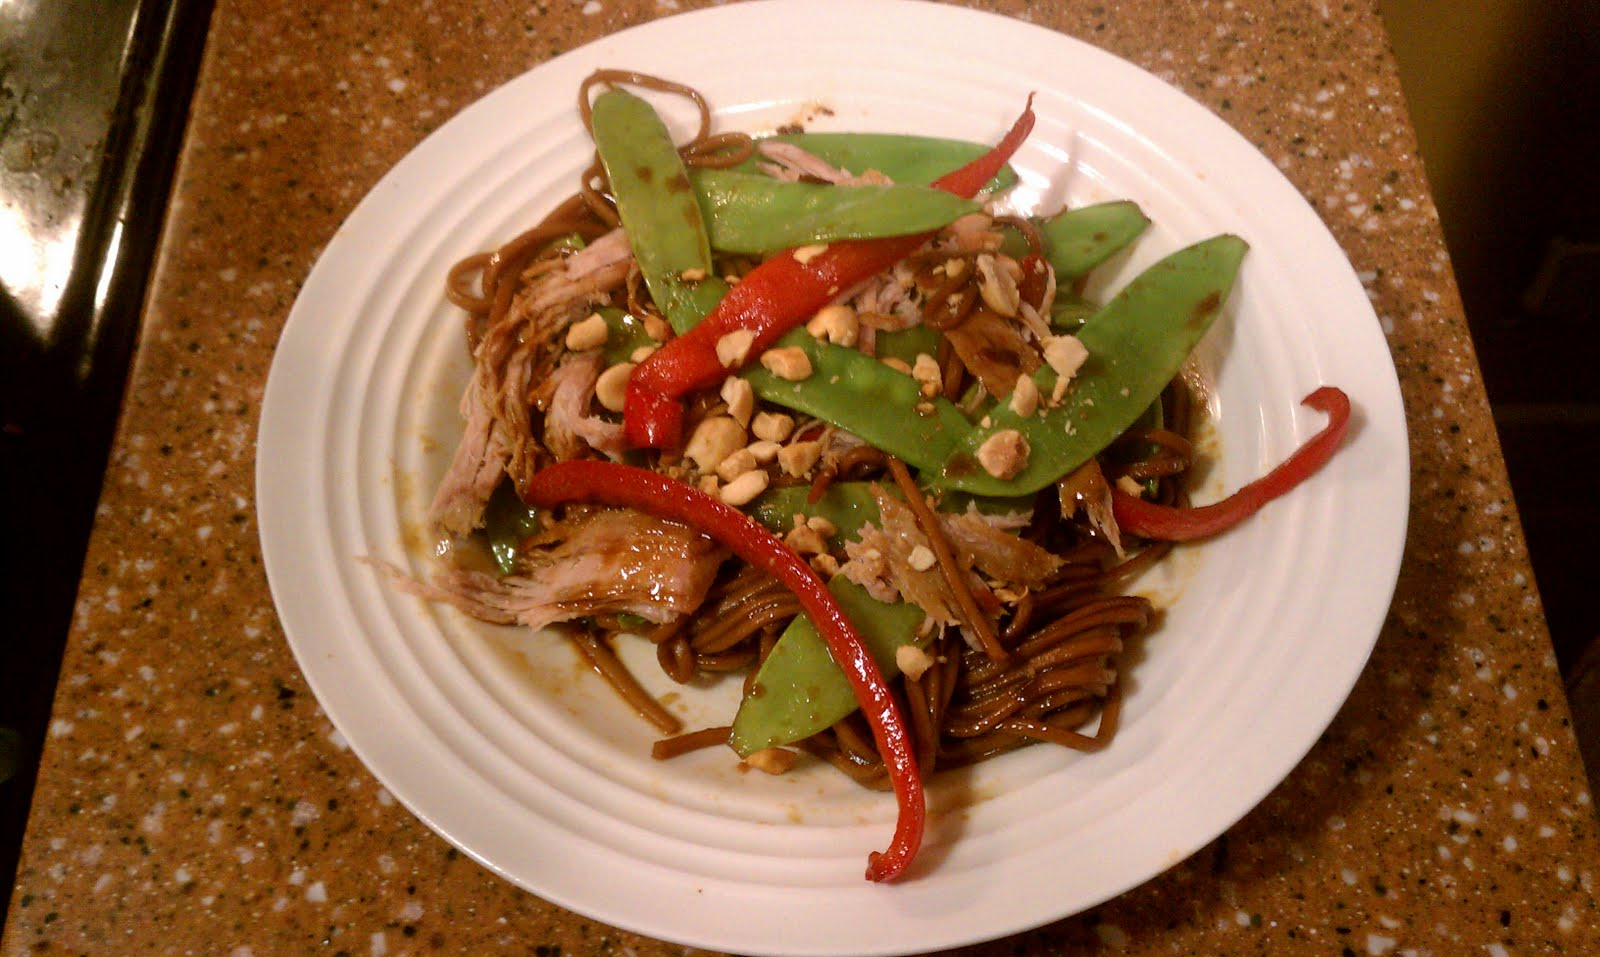 Crock Pot Asian Pork With Snow Peas, Red Peppers, and Soba Noodles